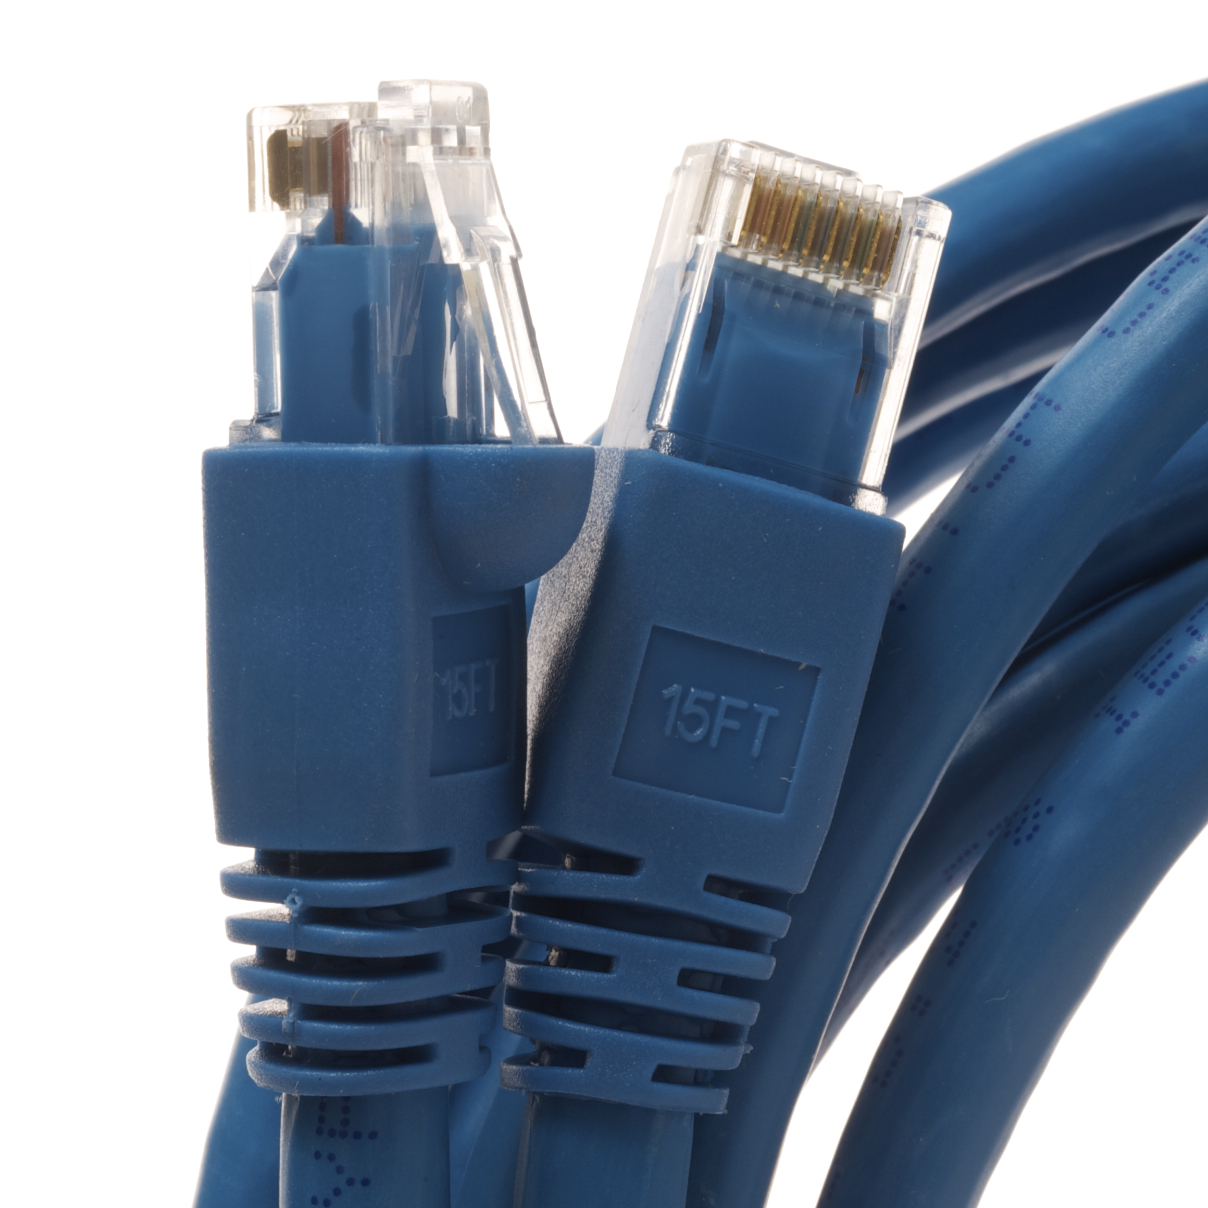 Category 6A Network Patch Cables